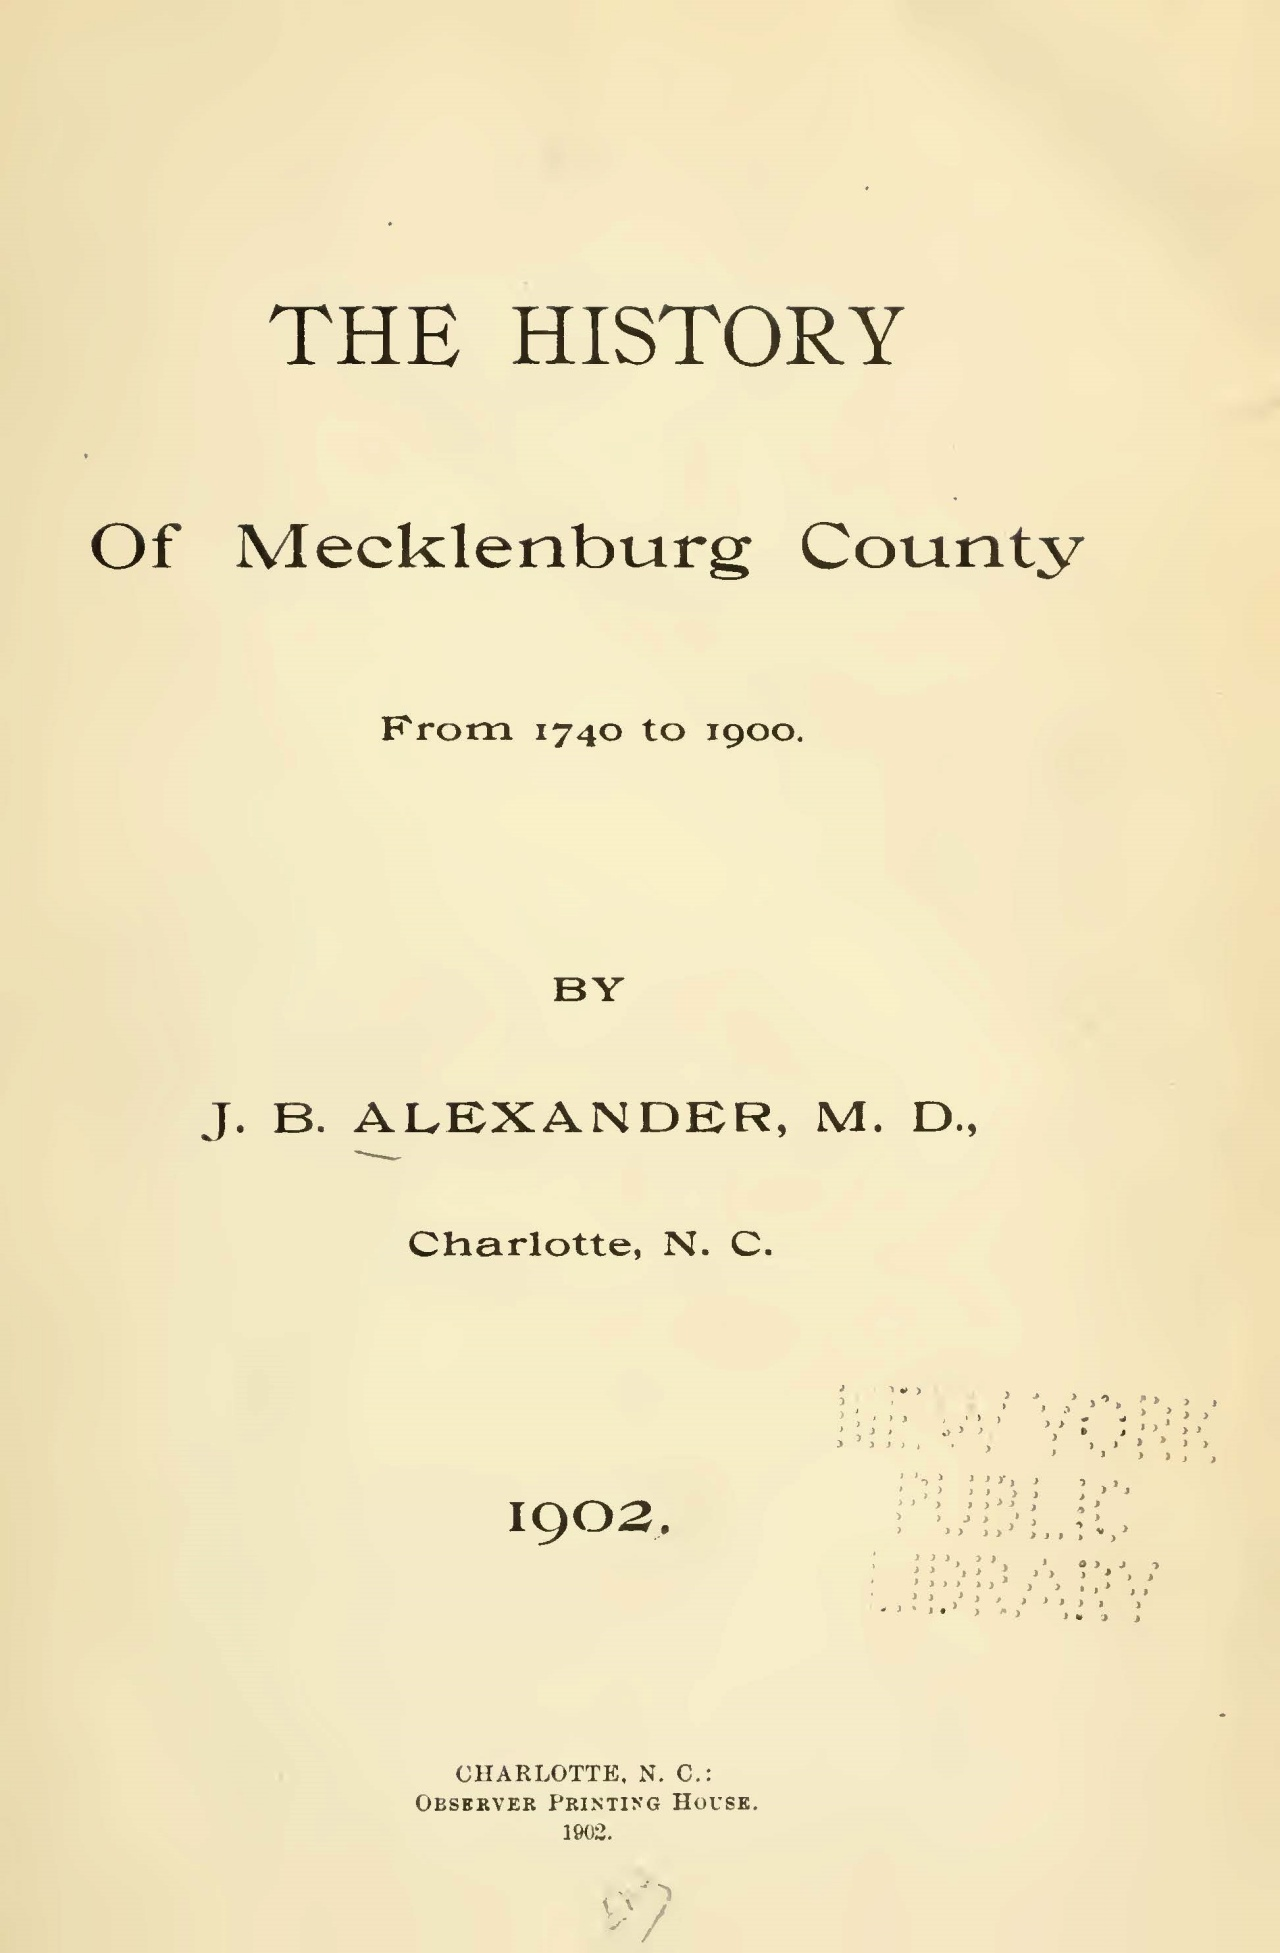 Alexander, Sr., John Brevard, The History of Mecklenburg County from 1740 to 1900 Title Page.jpg